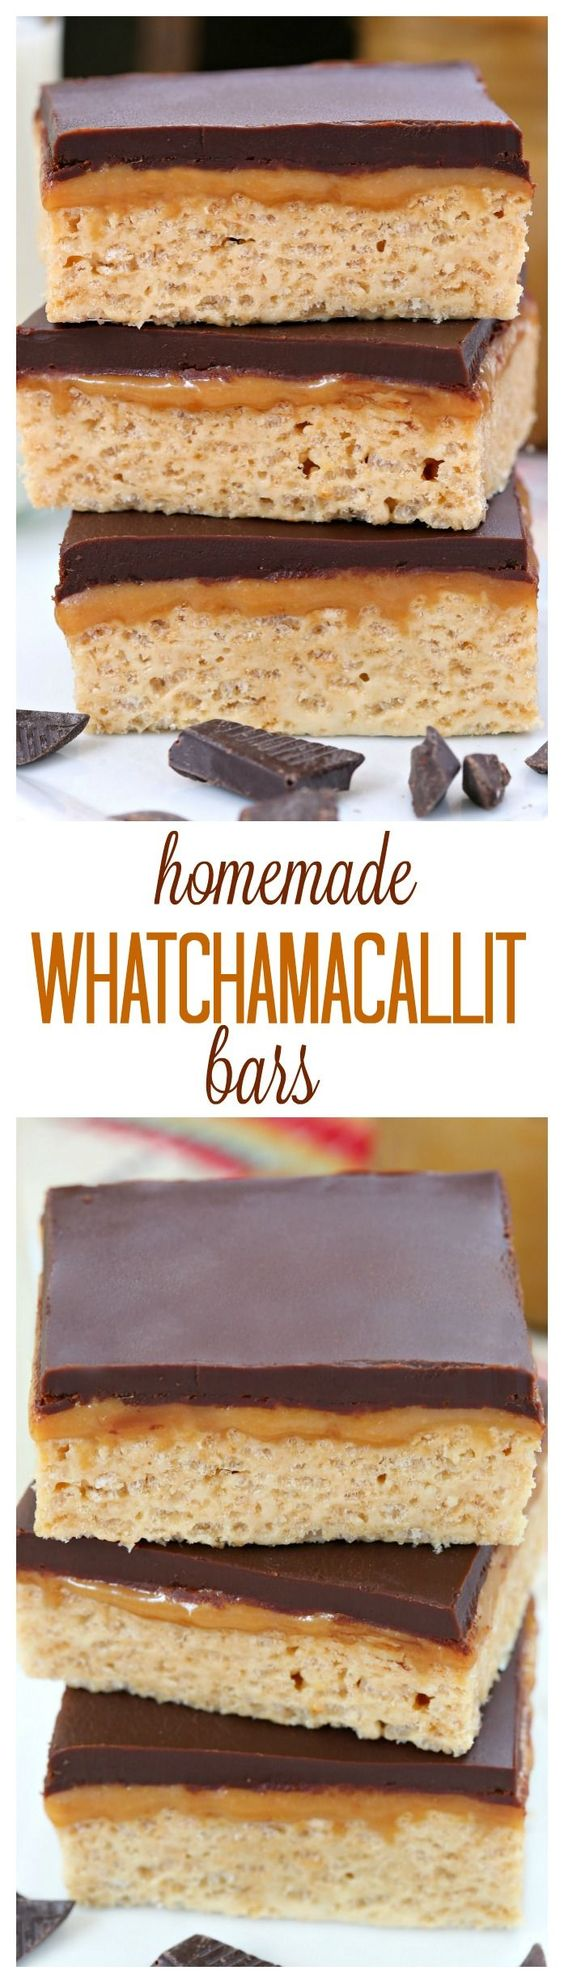 All you need is a handful of ingredients and 20 minutes of your time to make these chewy peanut butter bars topped with a layer of caramel and chocolate ganache. A delicious homemade version of the Whatchamacallit® candy bar!: